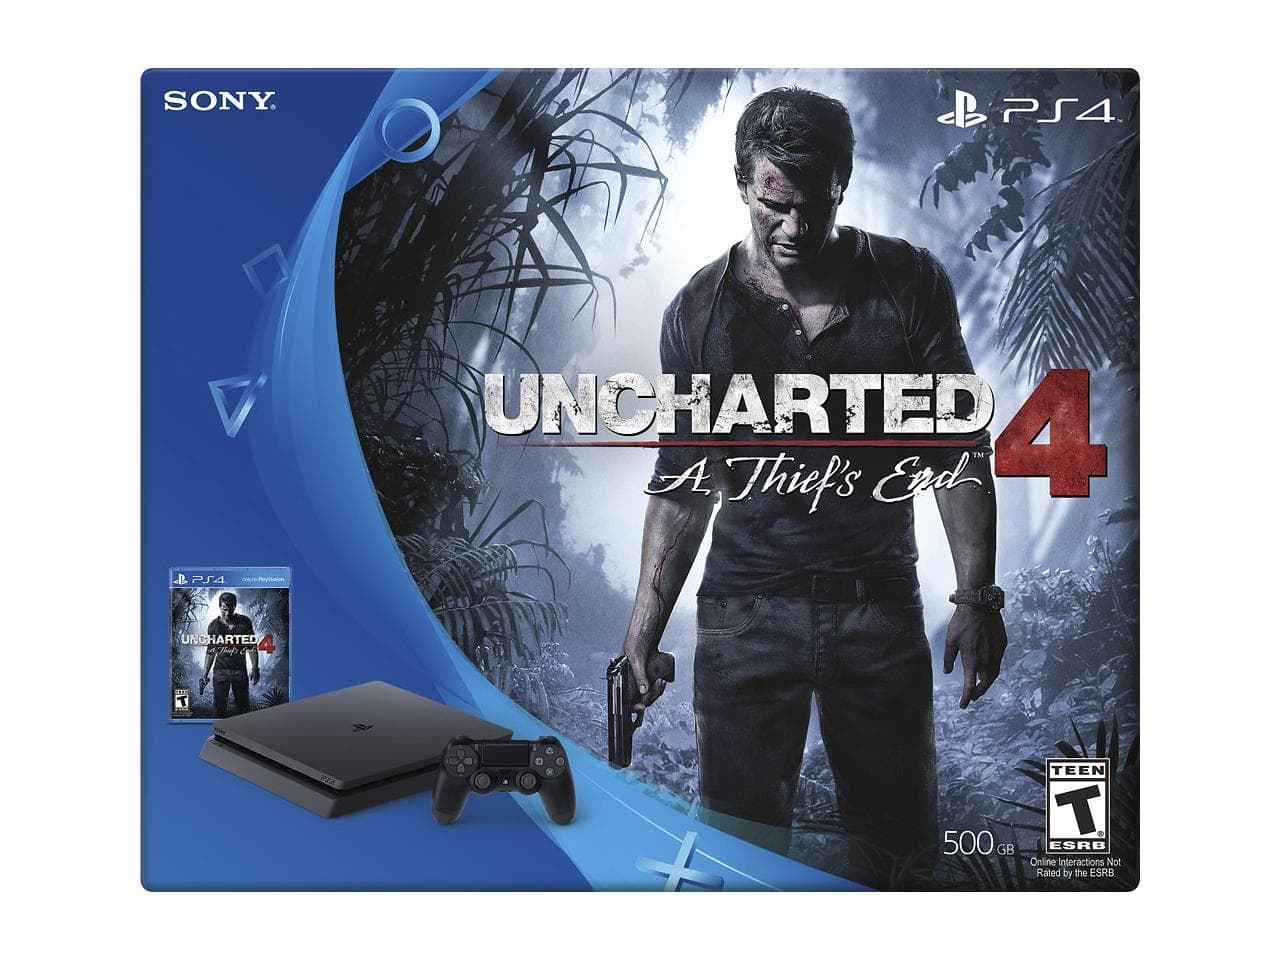 Sony PlayStation 4 Slim 500GB Console - Uncharted 4 Bundle (Refurbished) for $189.99 + Free Shipping @ Newegg